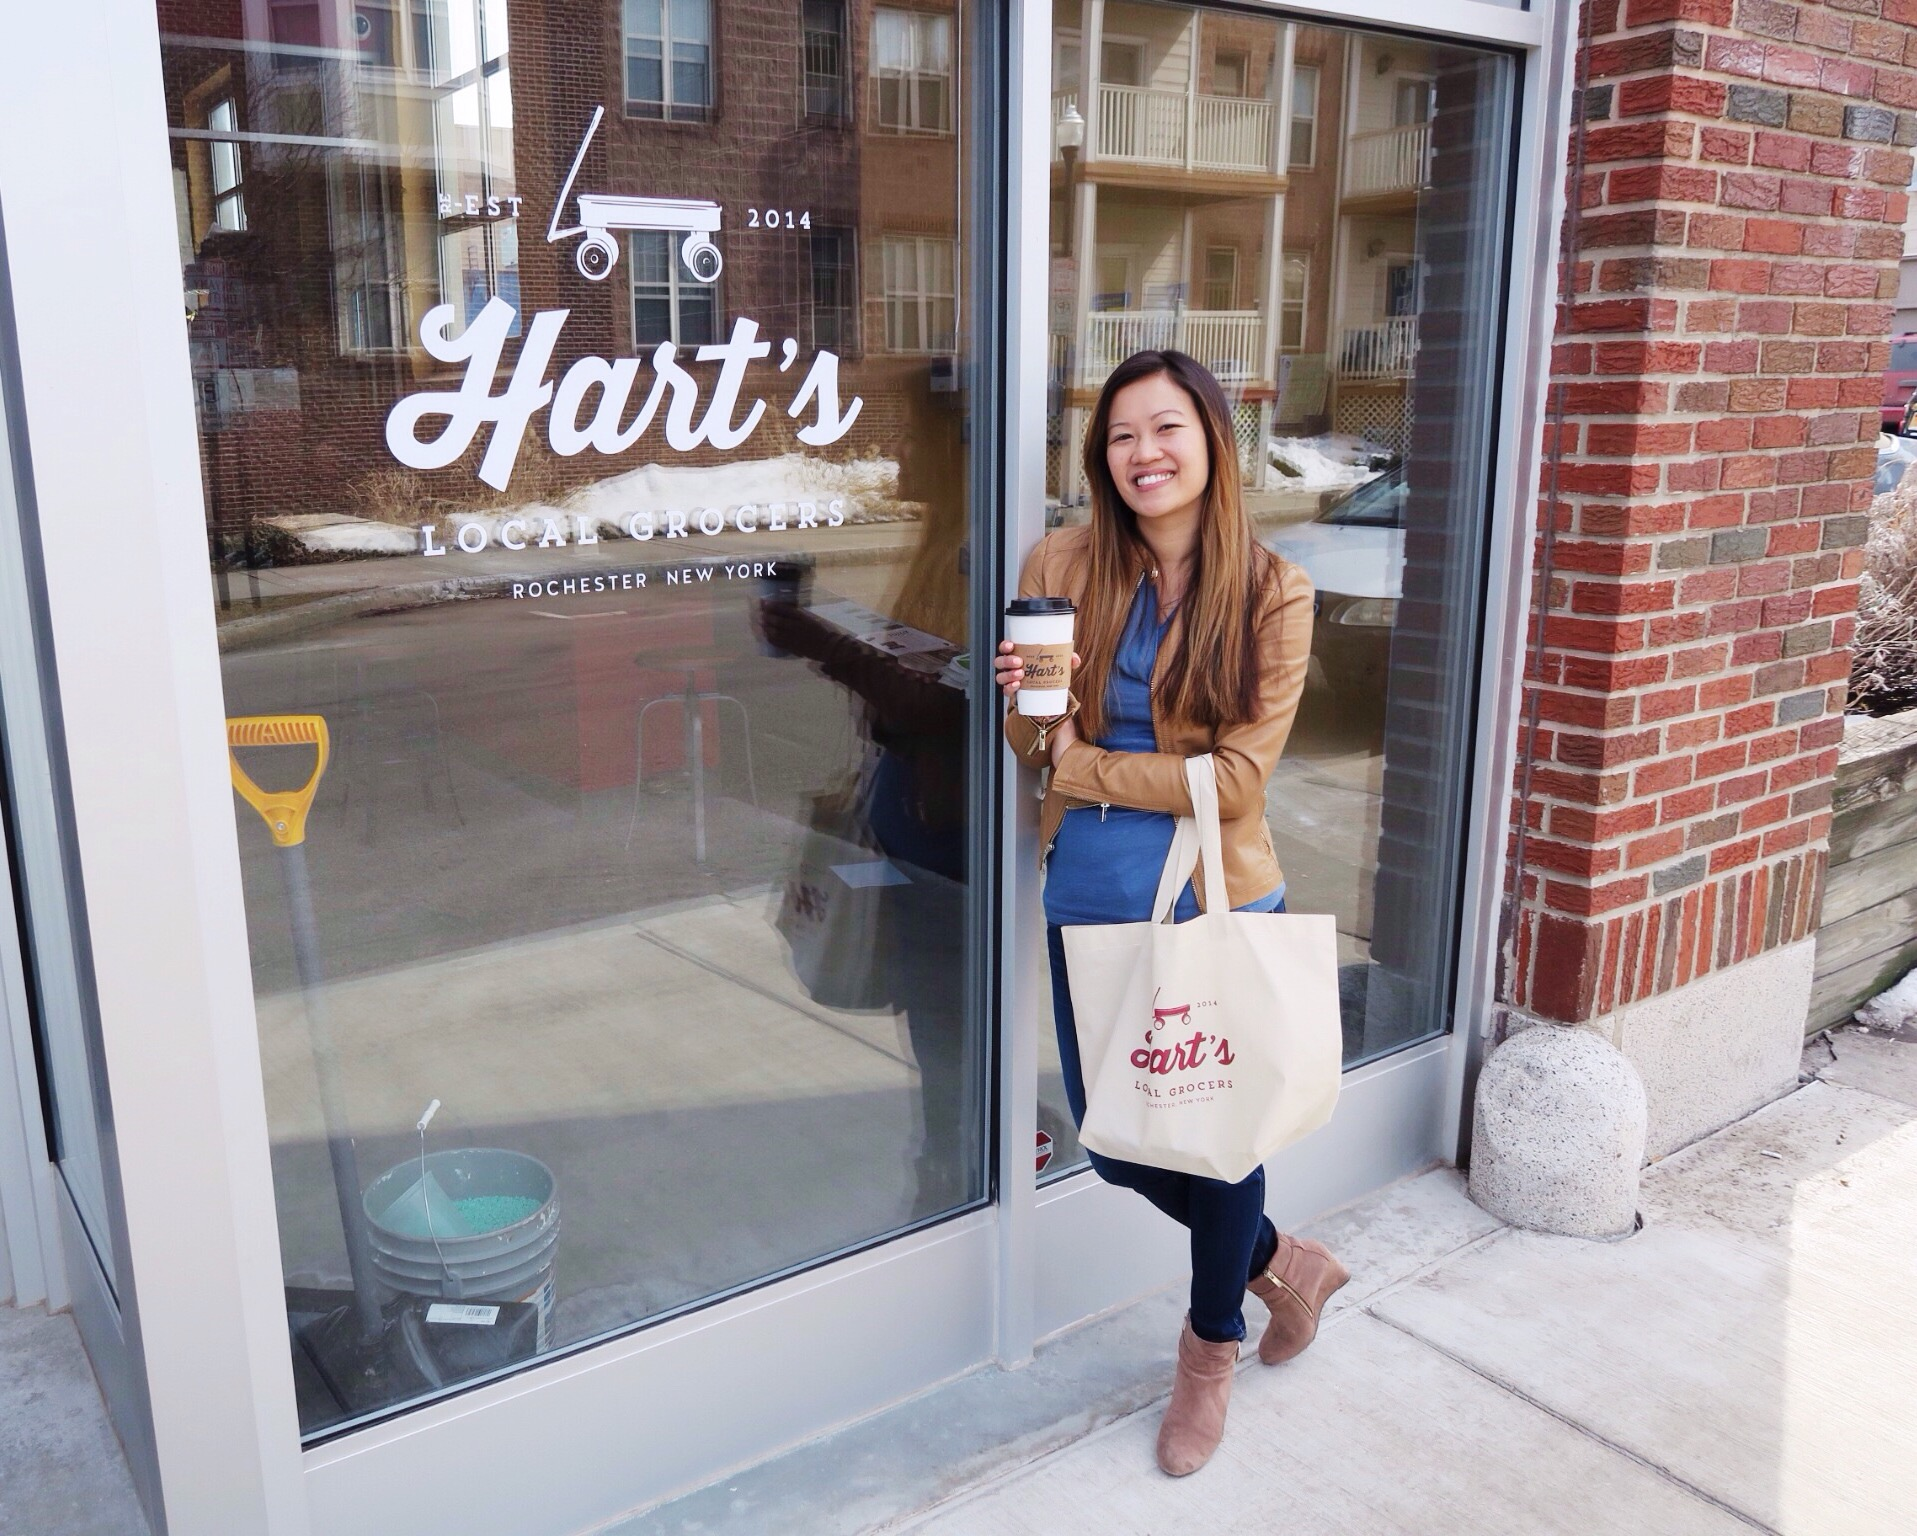 Being a total Hart's Geek with my shopping bag in one hand and Hart's Latte in the other. I also may drink from my Hart's coffee mug every morning at work.  Just saying.